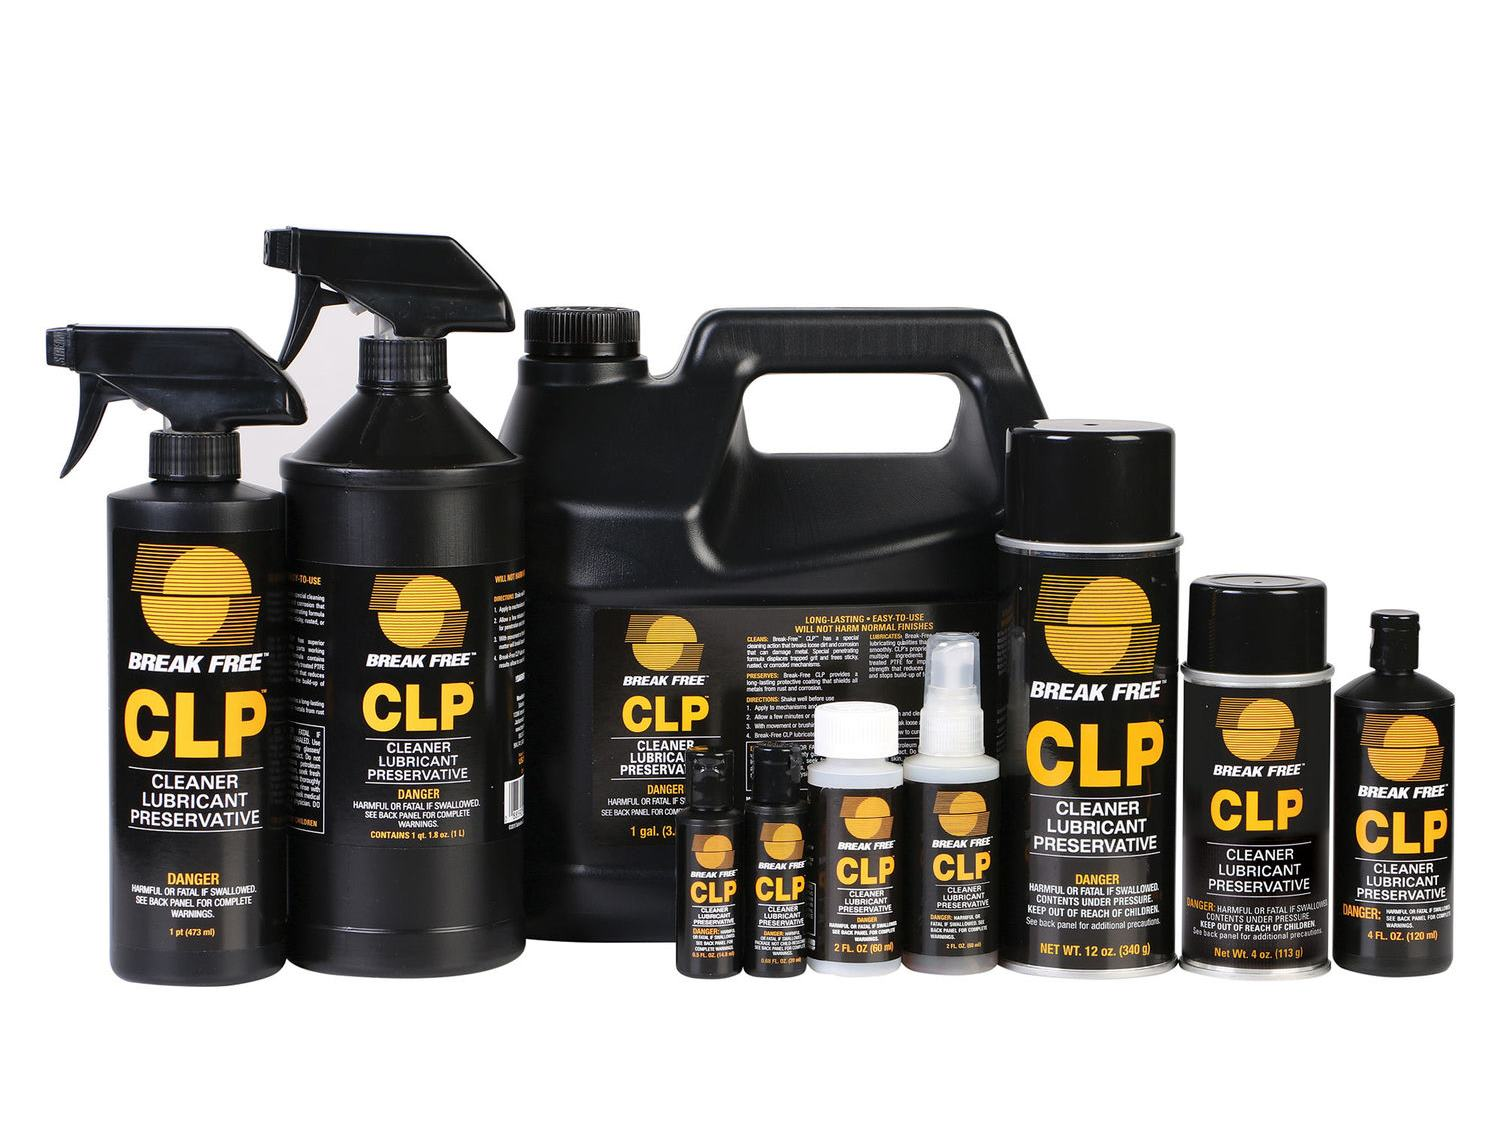 The 5 Best CLP Gun Cleaners of 2019 – Reviews & Buyer's Guide